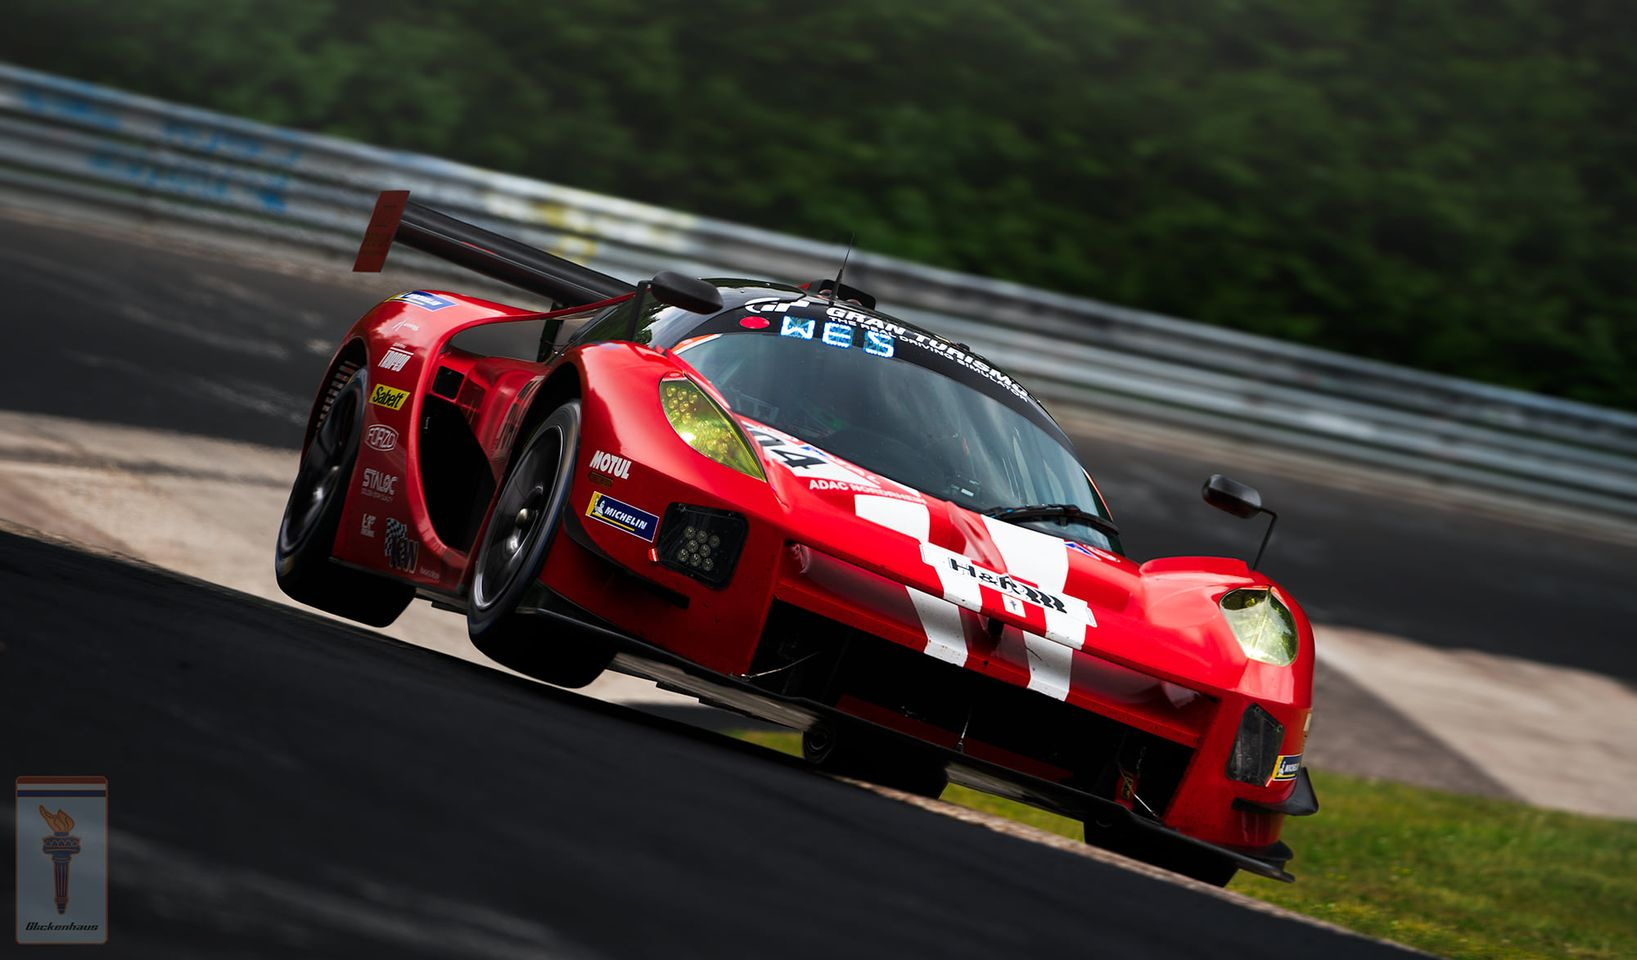 Glickenhaus Finishes Tenth 24 Hour Race at Nurburgring in the SCG004C on Forgeline One Piece Forged Monoblock GTD1 Wheels